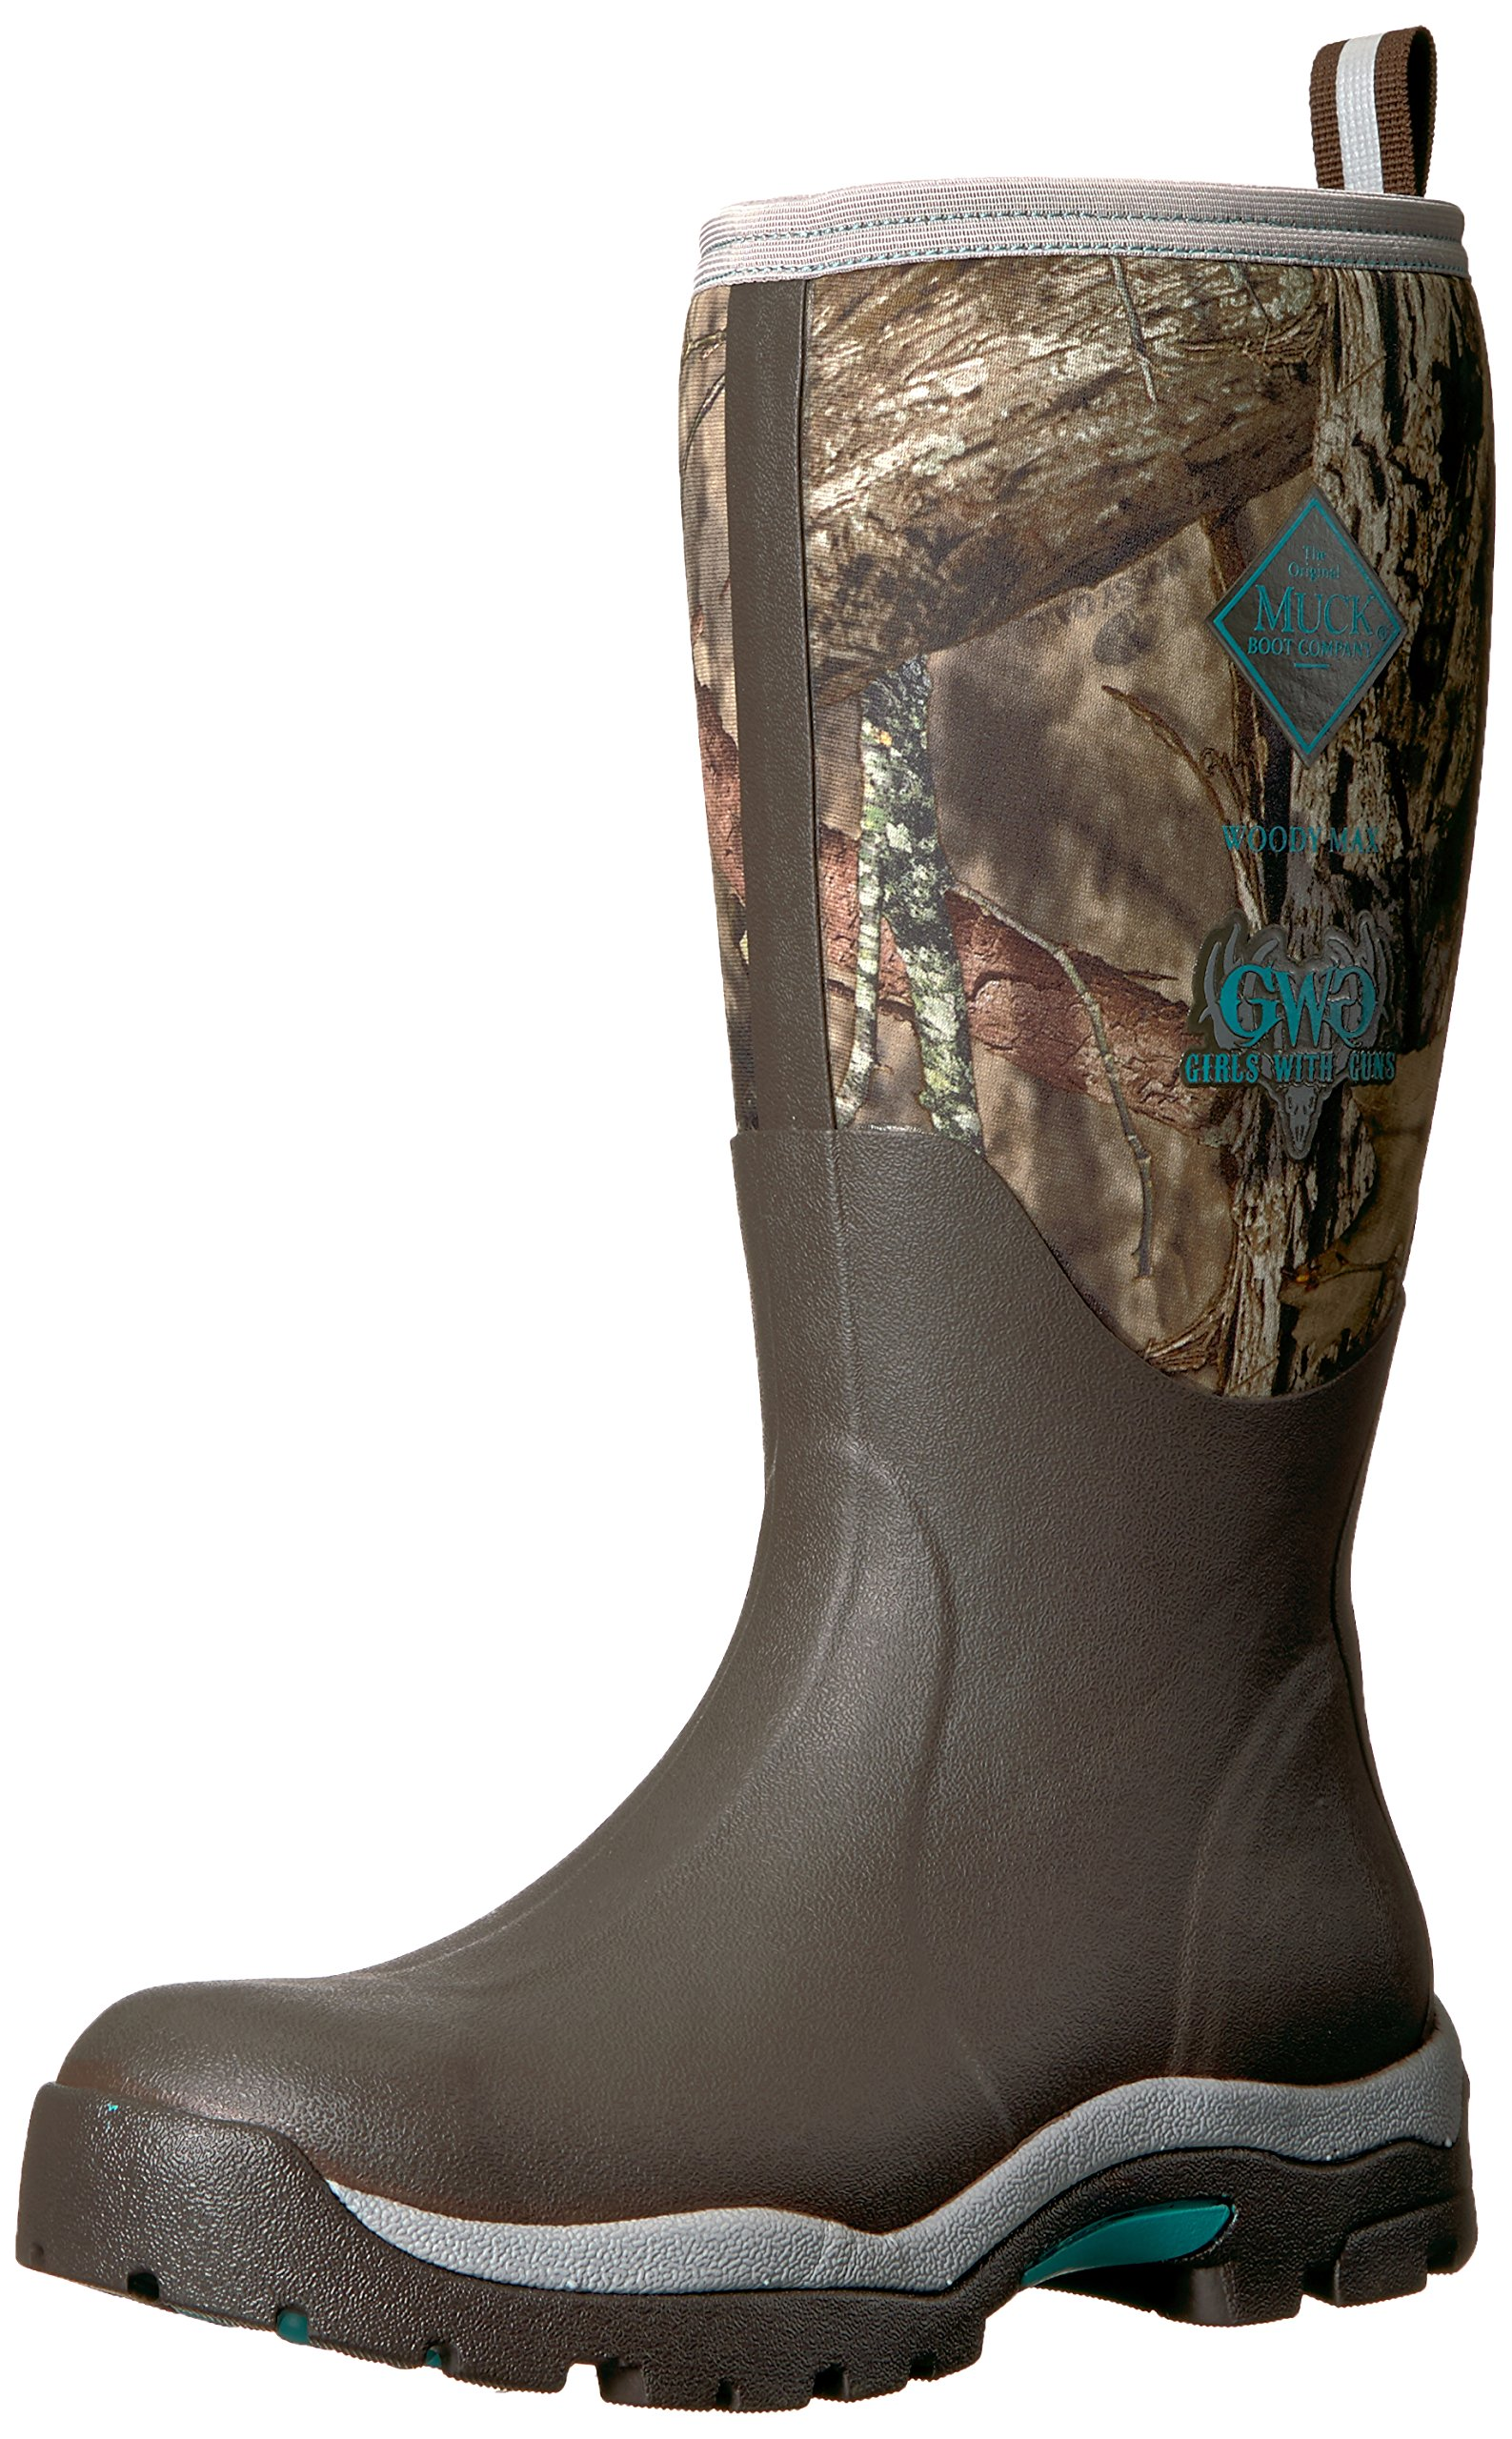 Muck Boot Women's Woody PK Work Boot, Bark, Mossy Oak Break-up/Teal, 10 M US